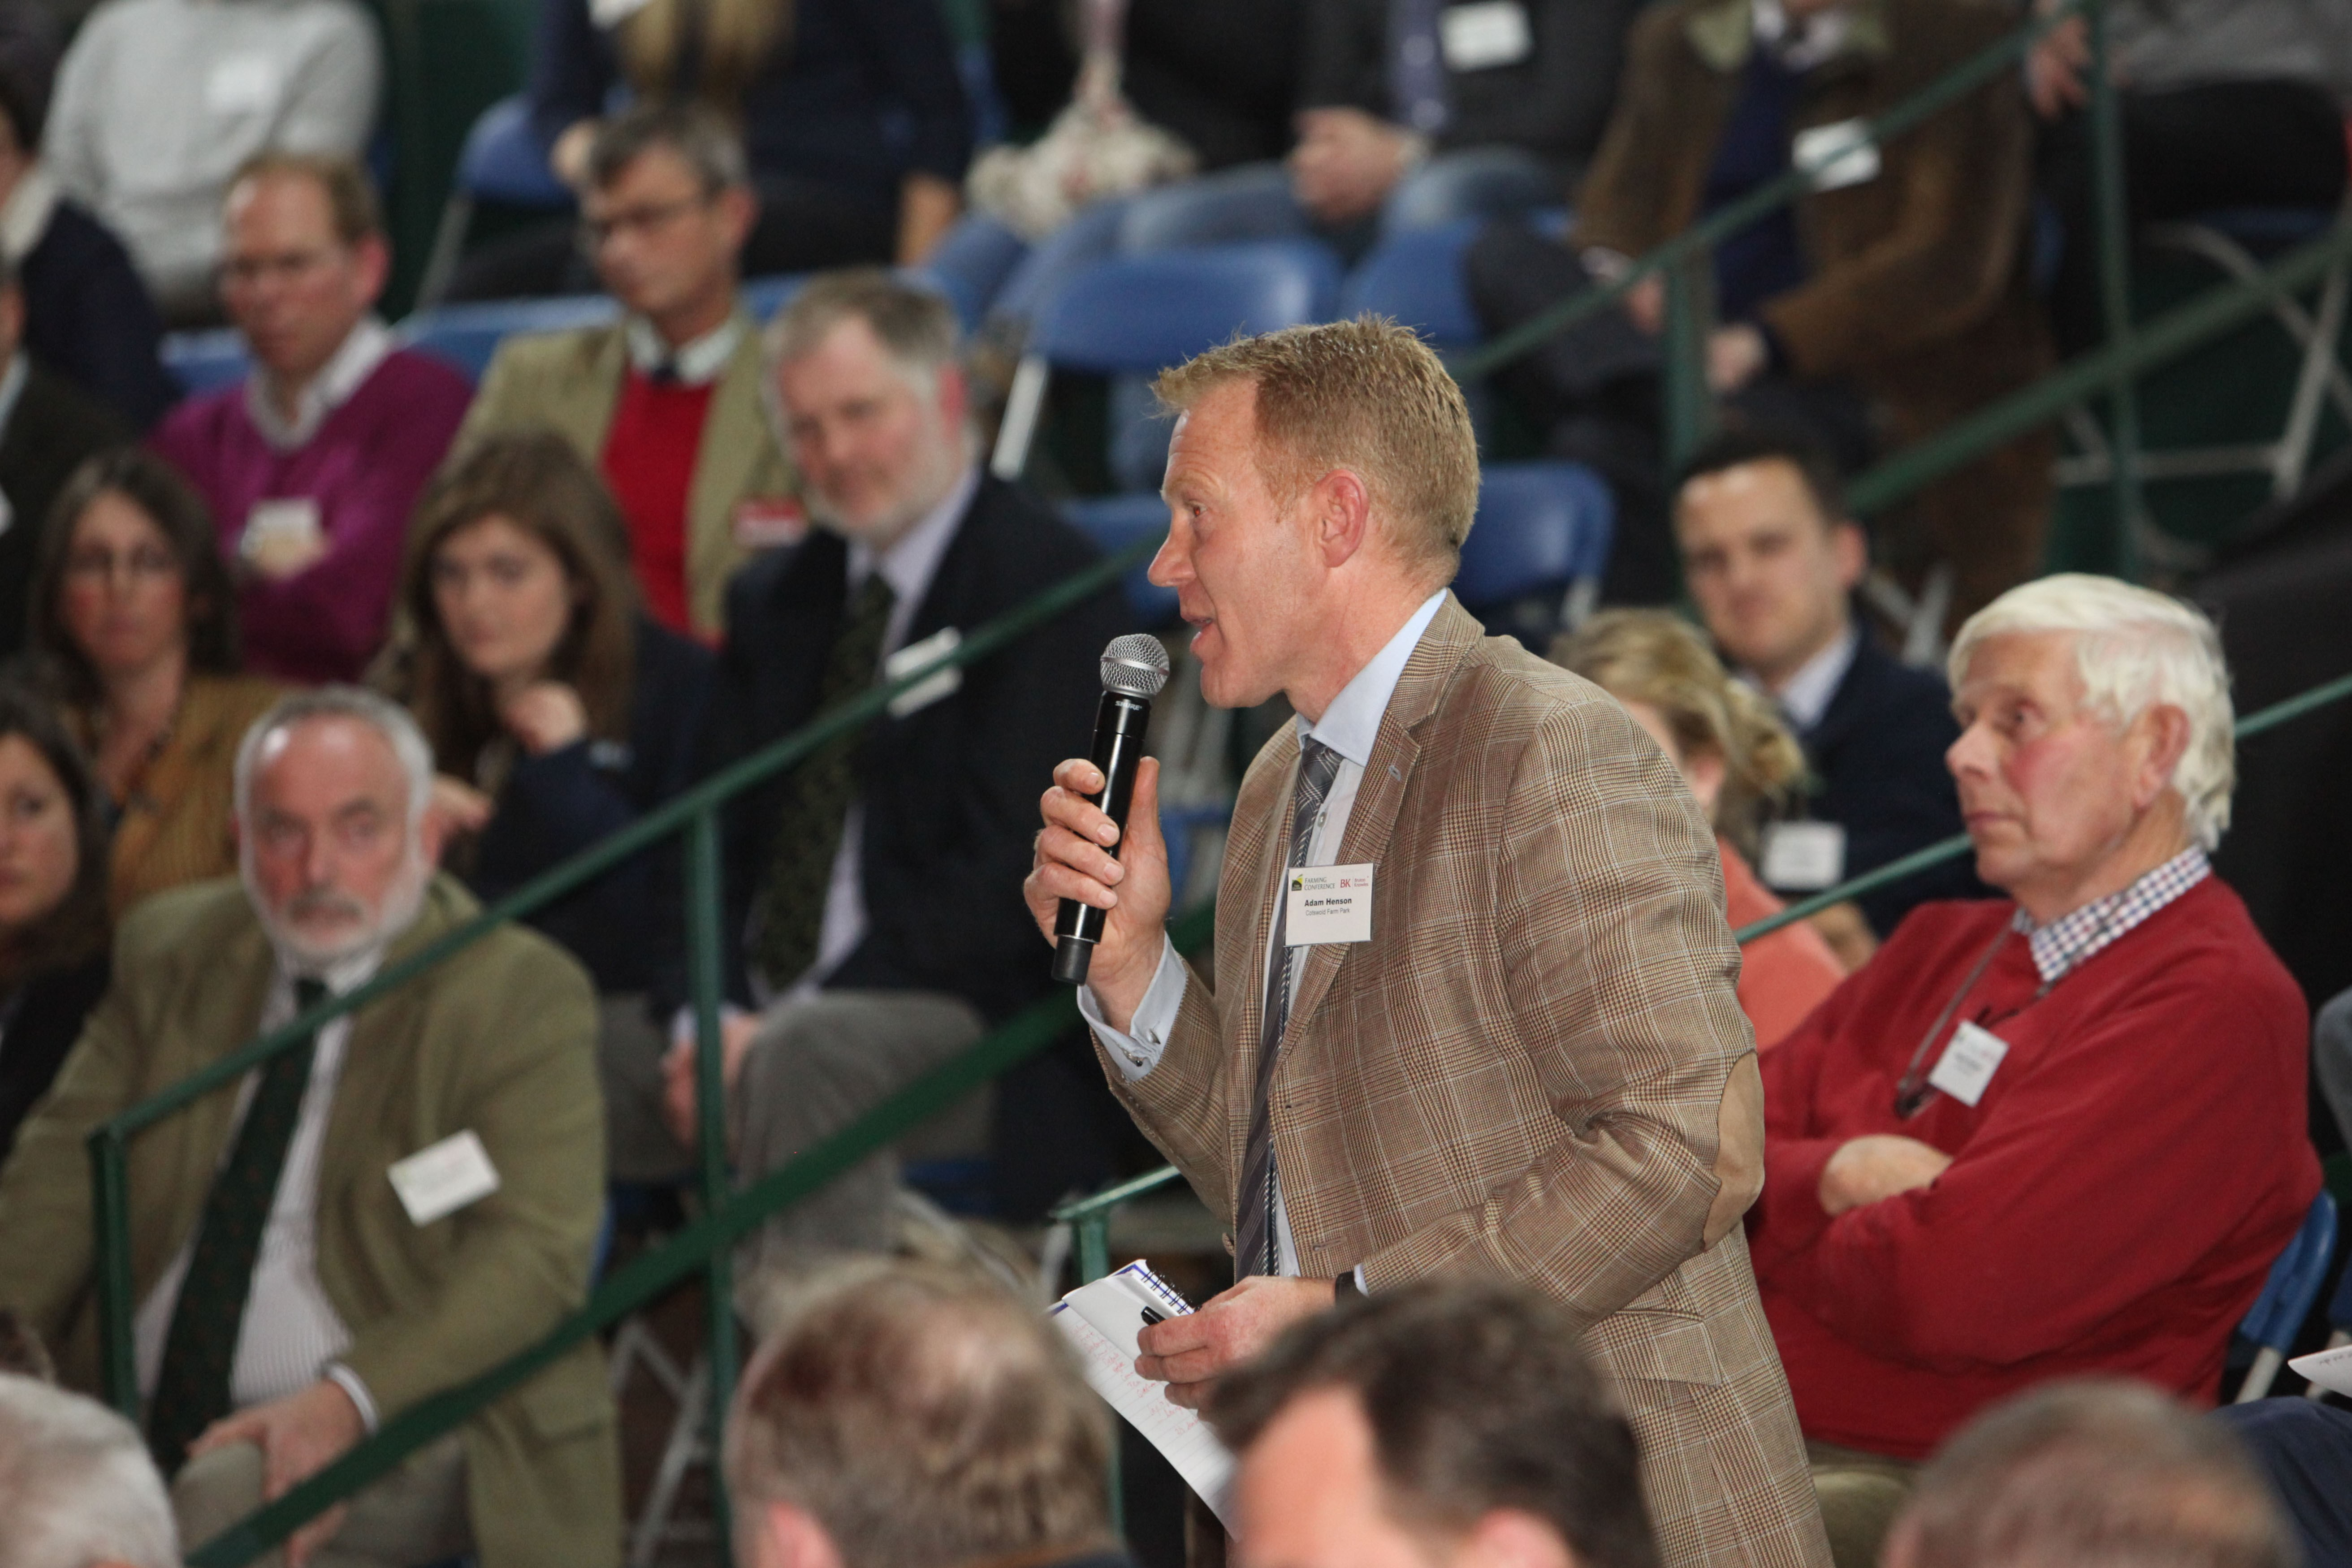 Threecounties Farming Conference Speaker 2017 Adam Henson.jpg